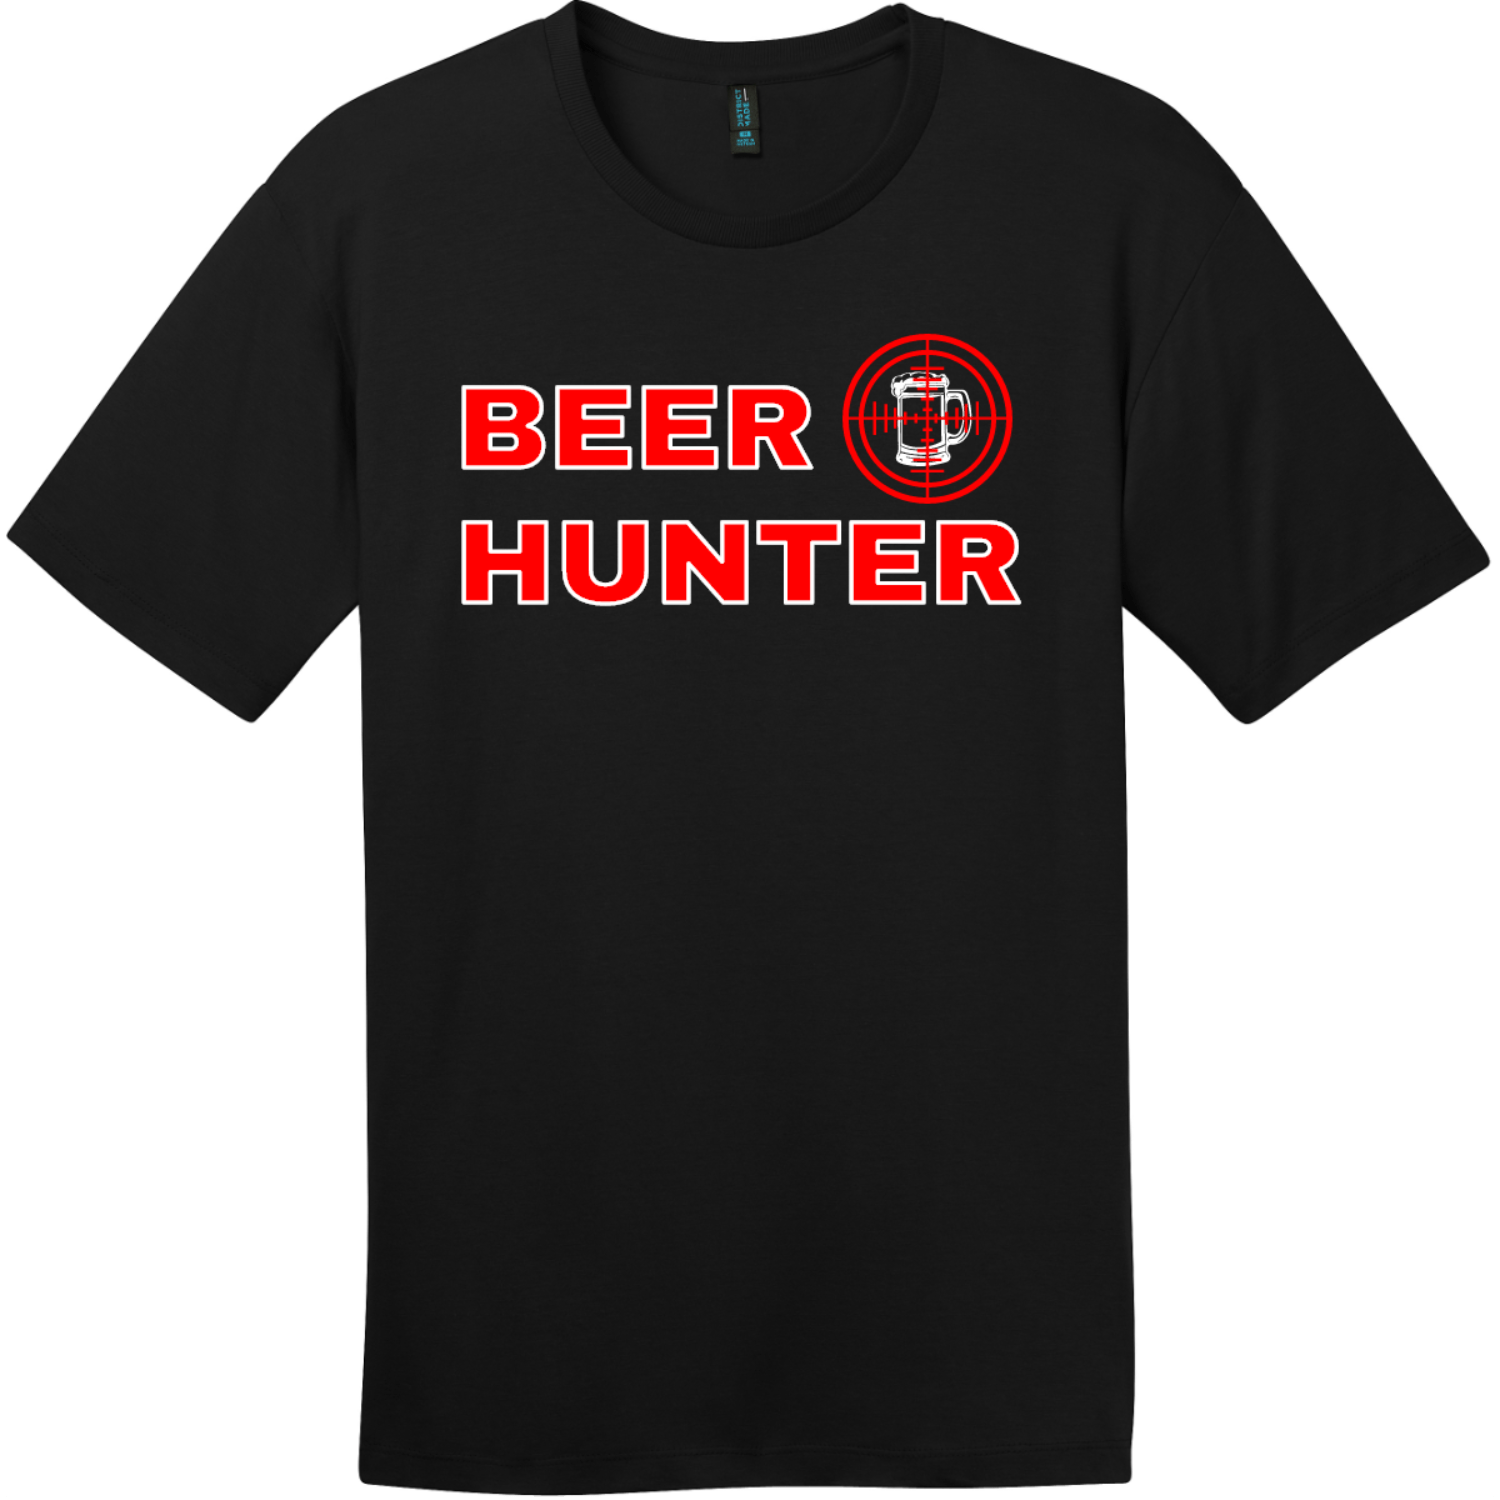 Beer Hunter Funny Beer T-Shirt Jet Black District Perfect Weight Tee DT104